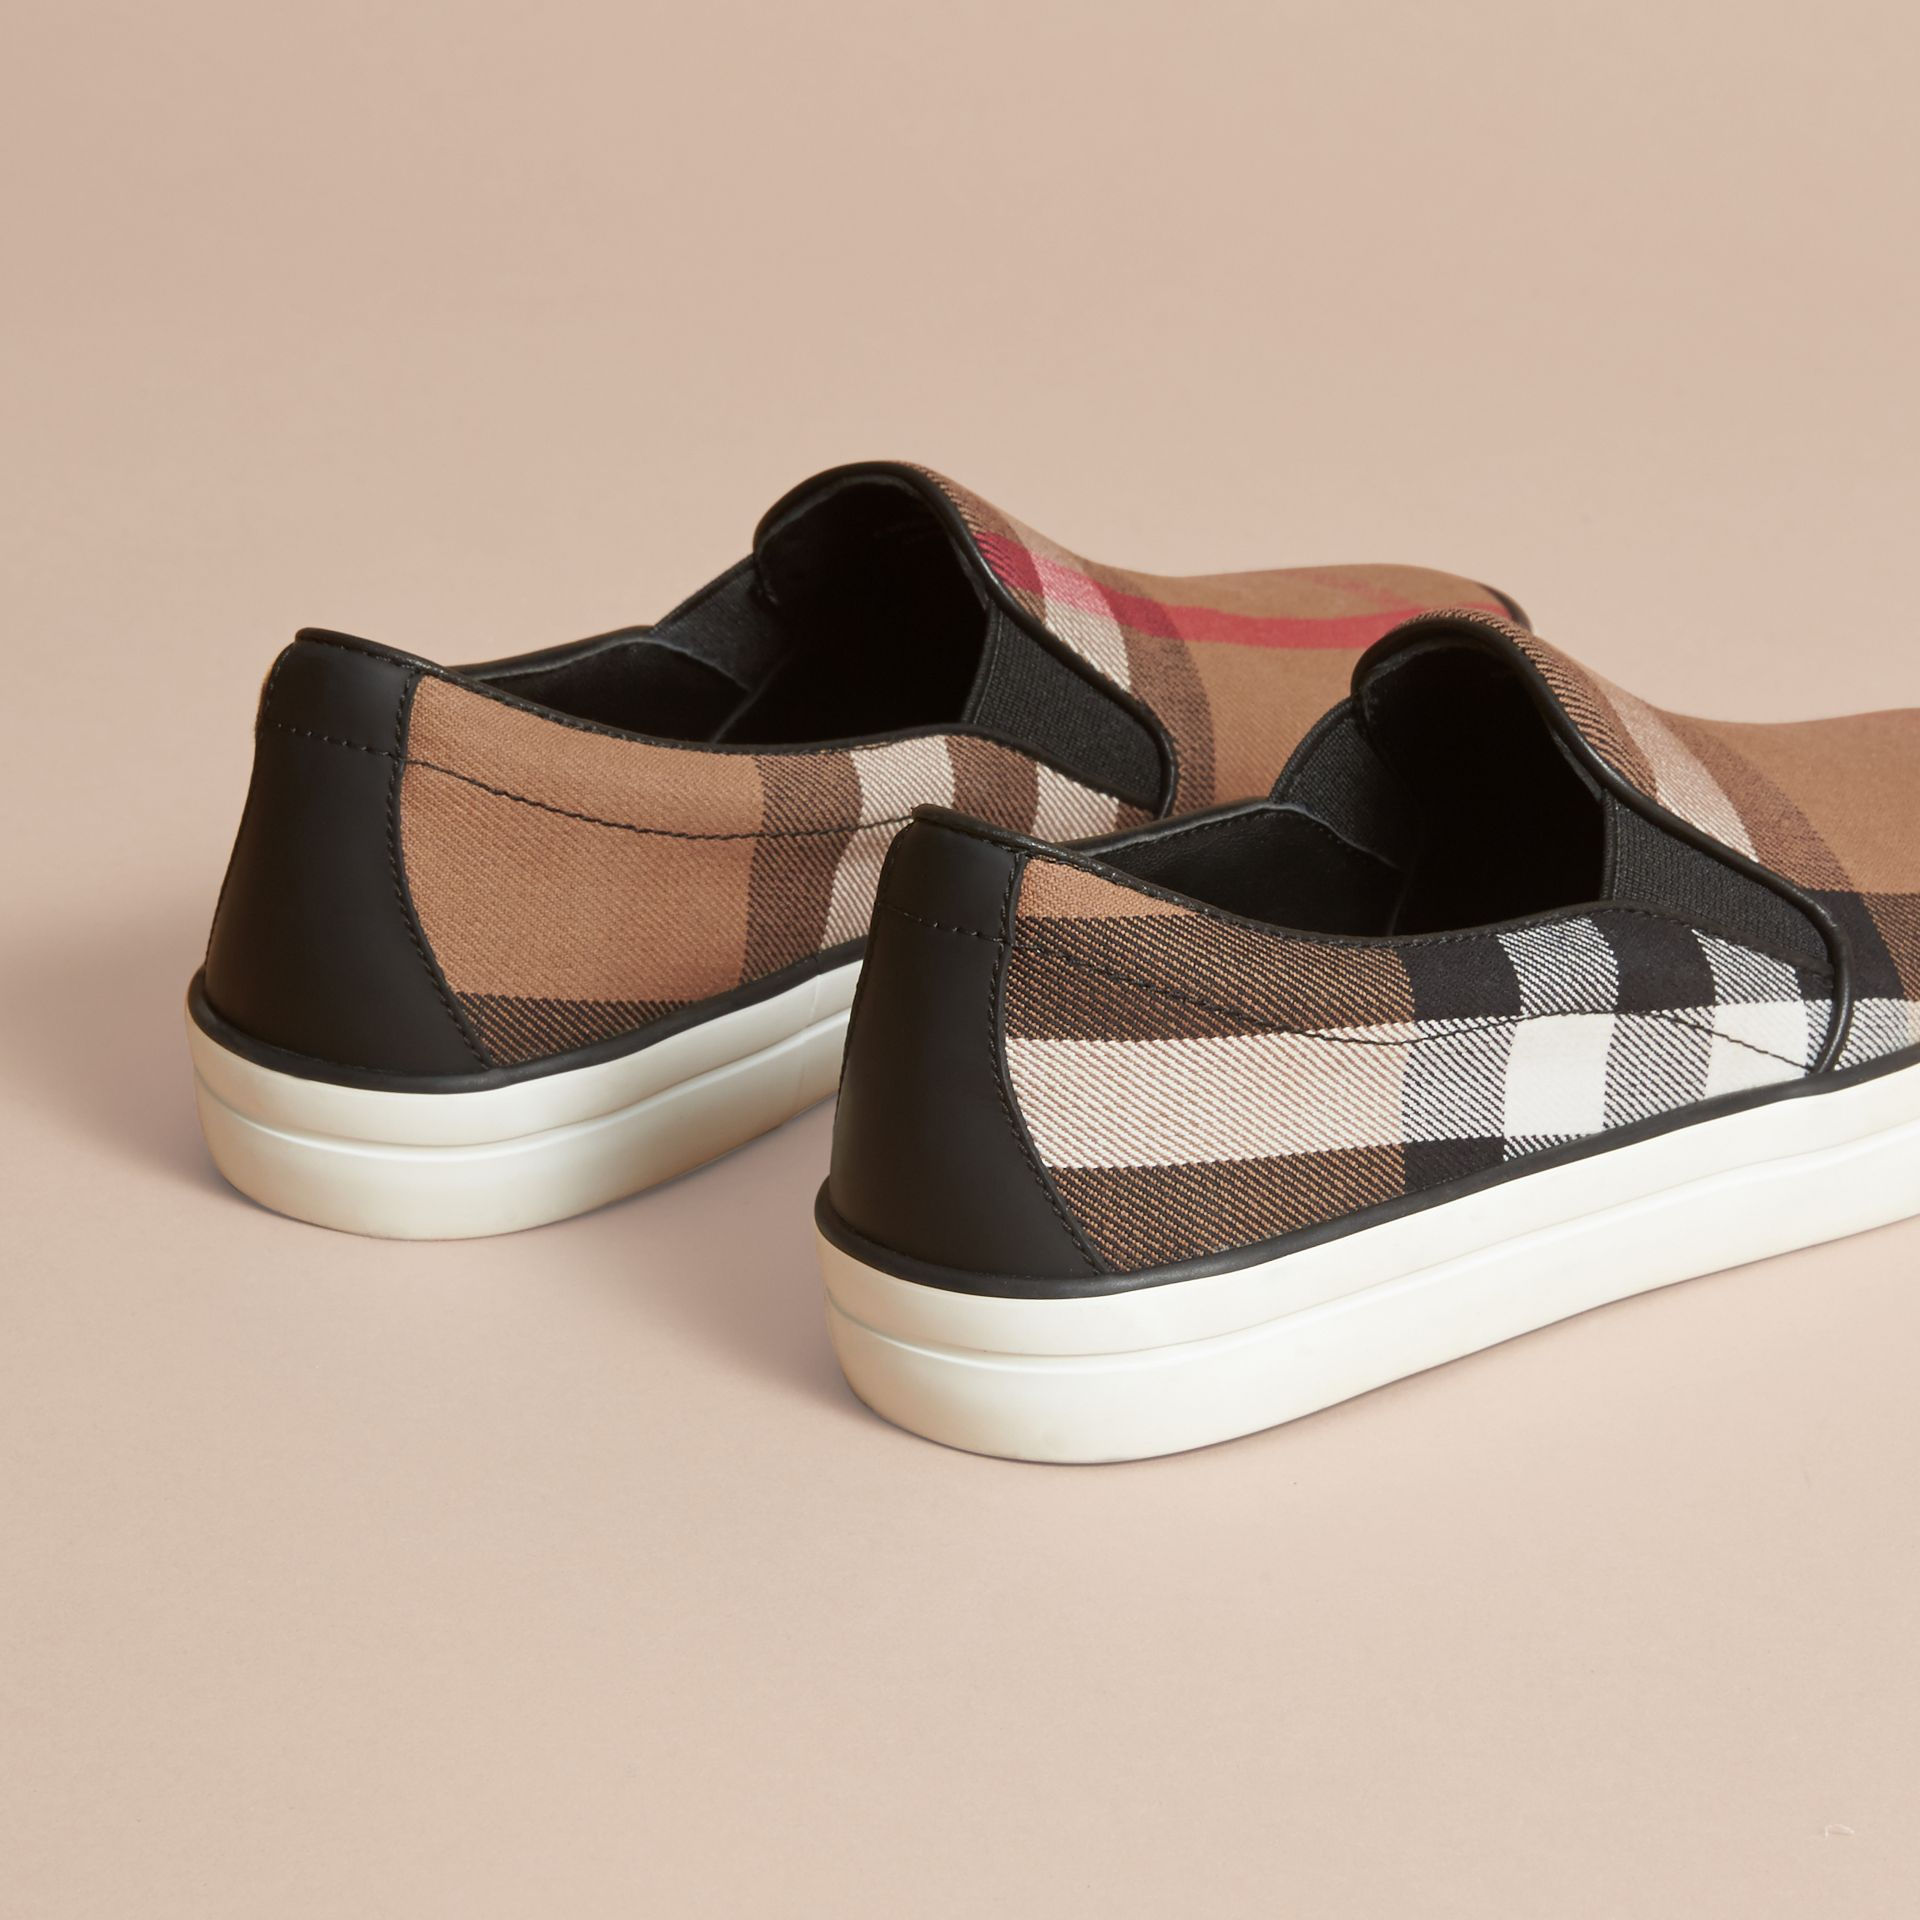 House Check Cotton and Leather Slip-on Trainers in Classic - Women | Burberry - gallery image 4